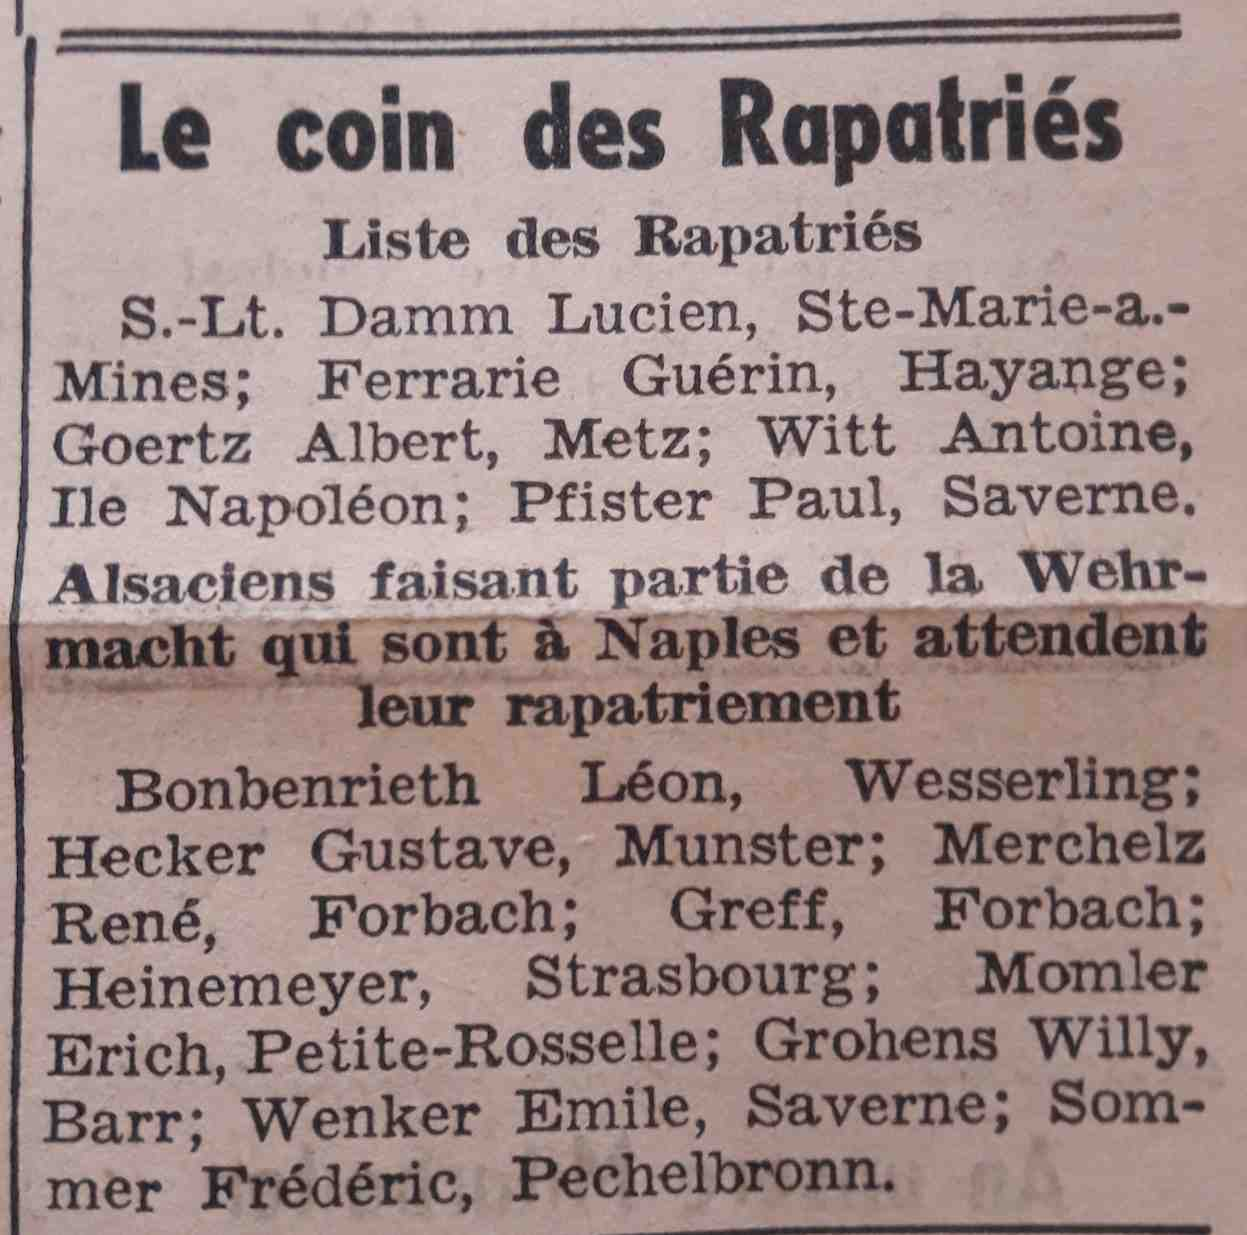 le_coin_des_rapatries.jpg